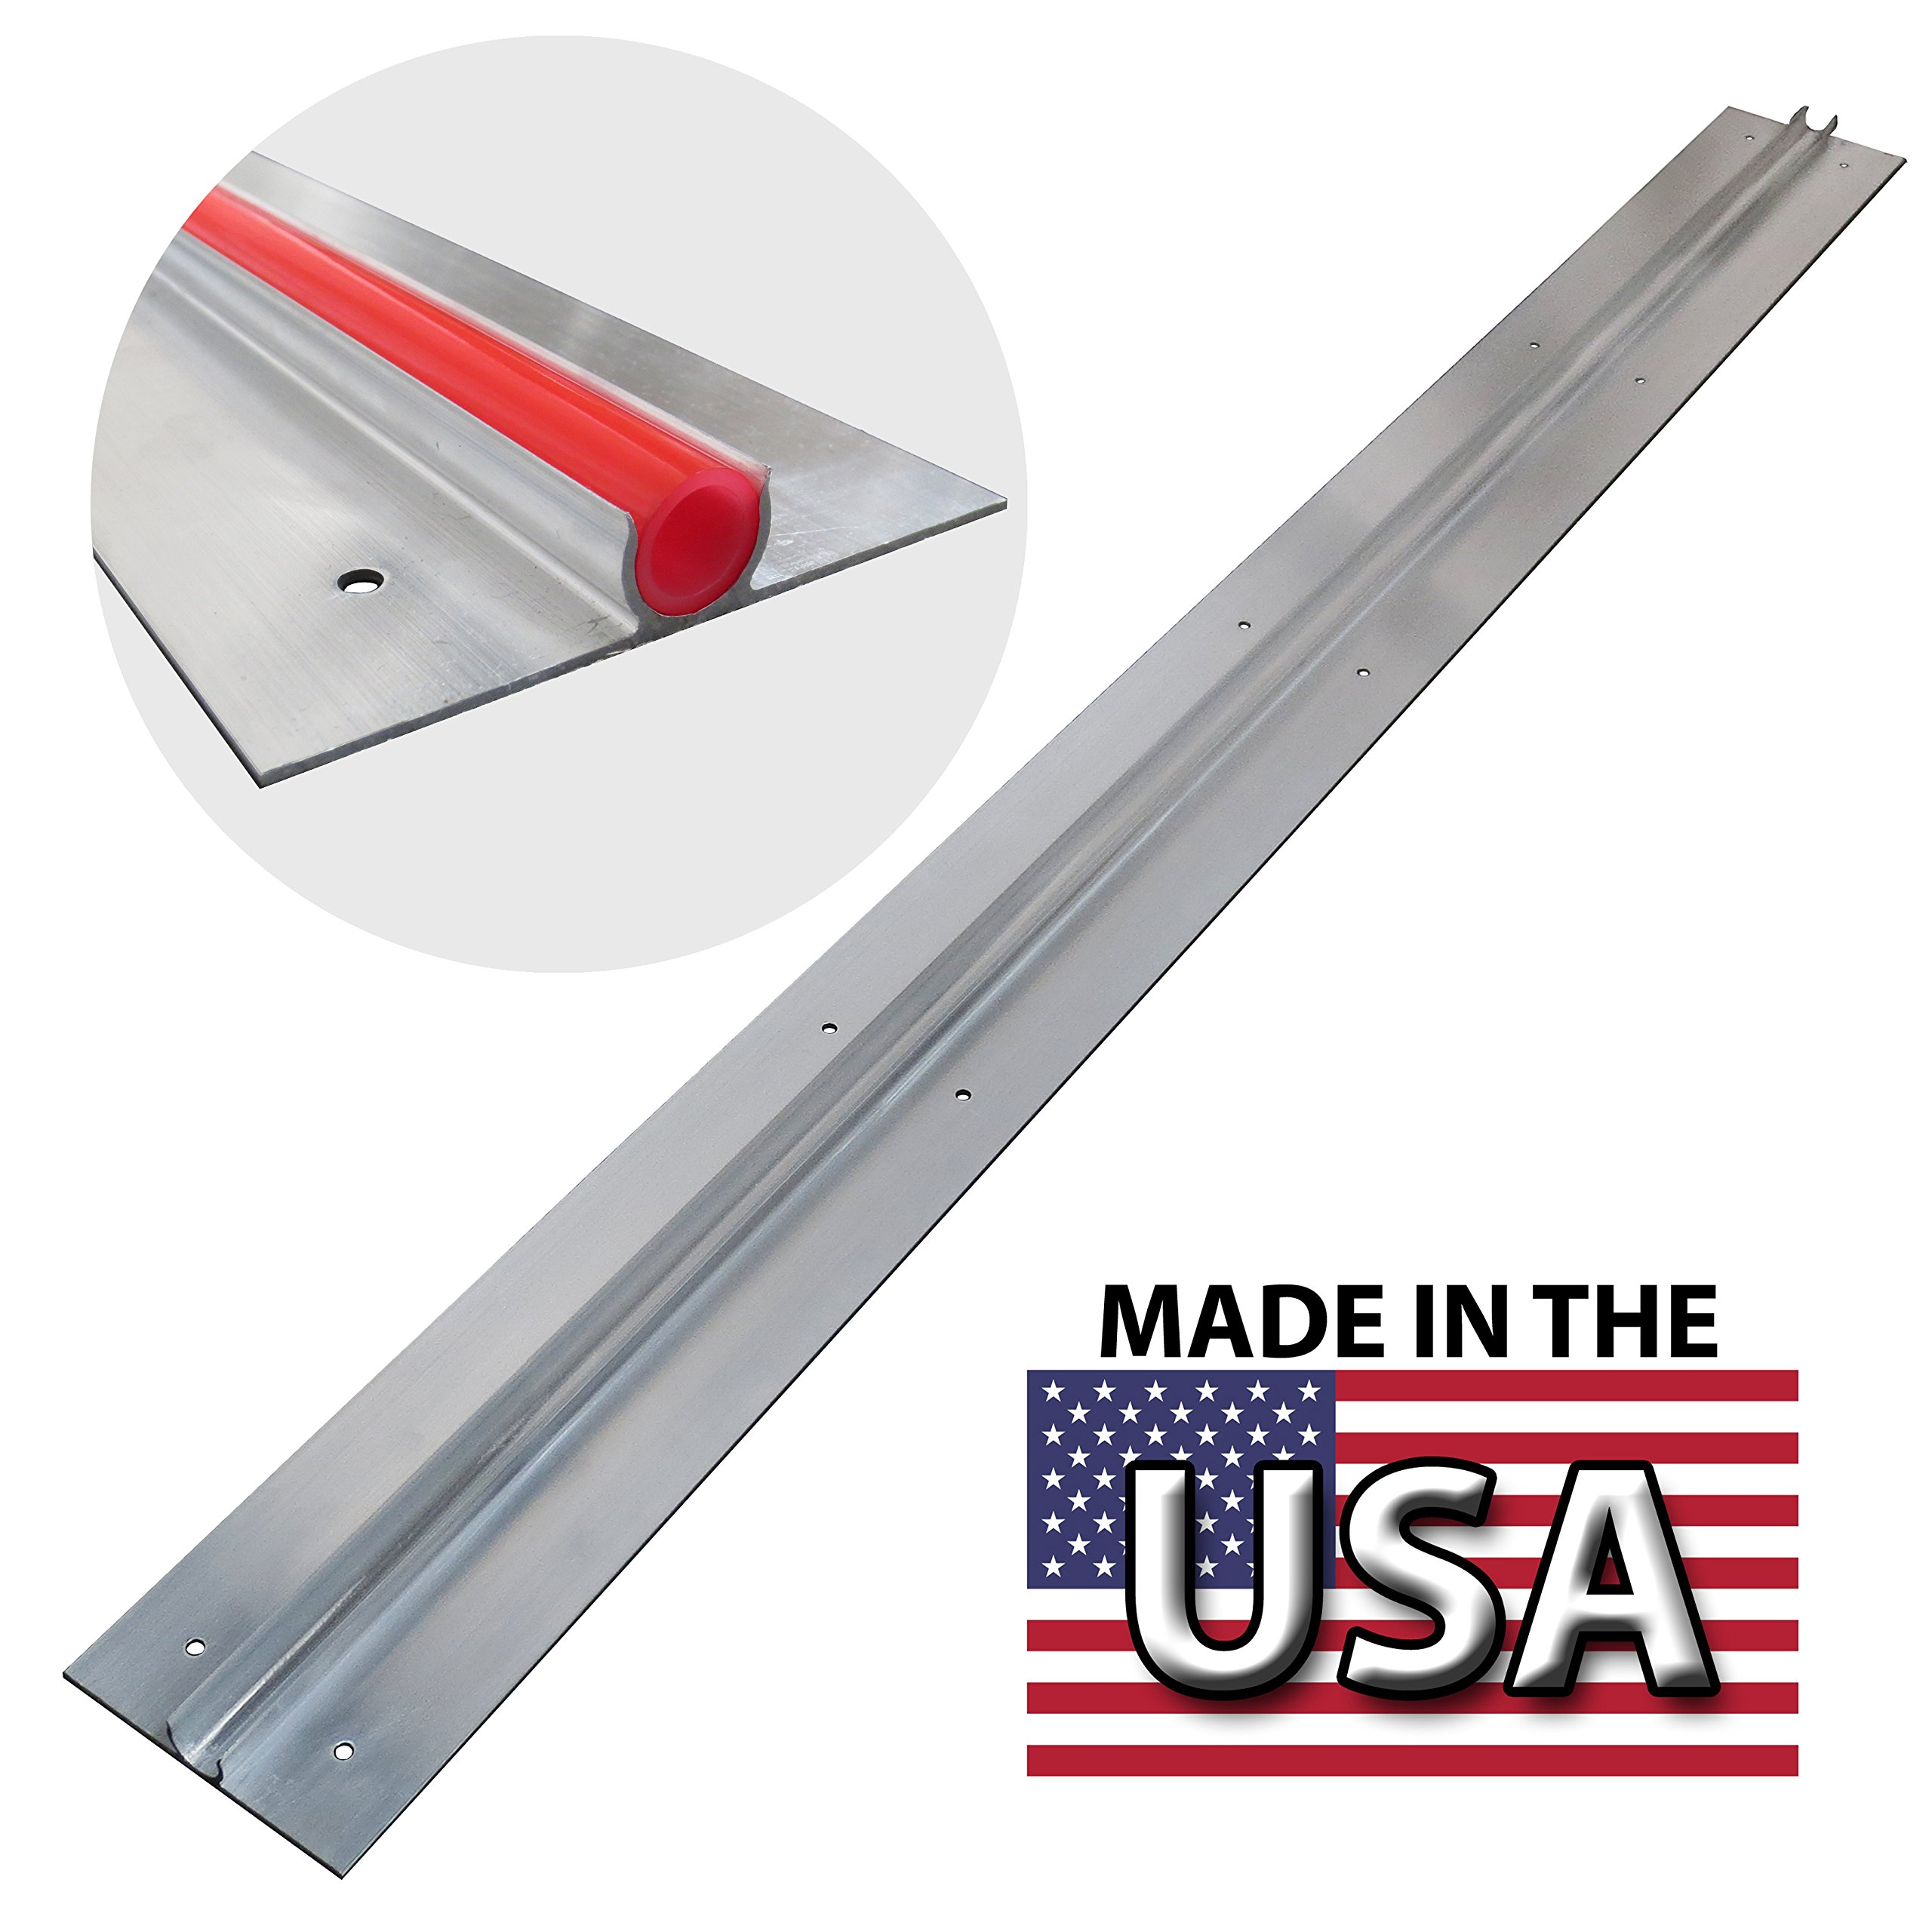 PEX GUY Extruded 4 Ft Aluminum Heat Transfer Plates for 1/2'' PEX (25 pc/box) by PEX GUY